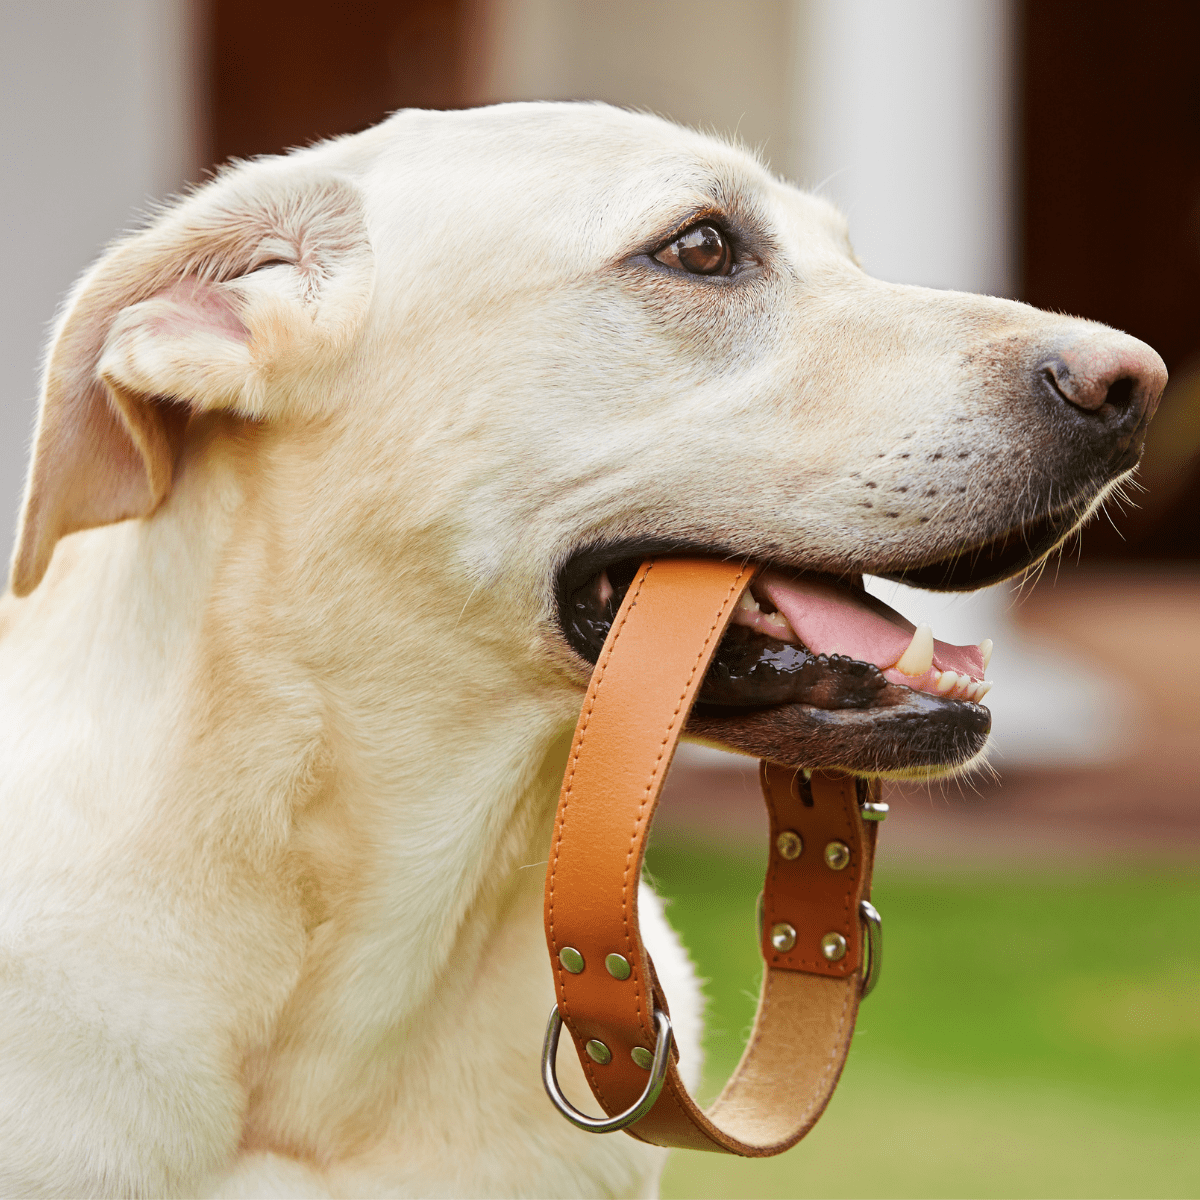 dog with collar in his mouth